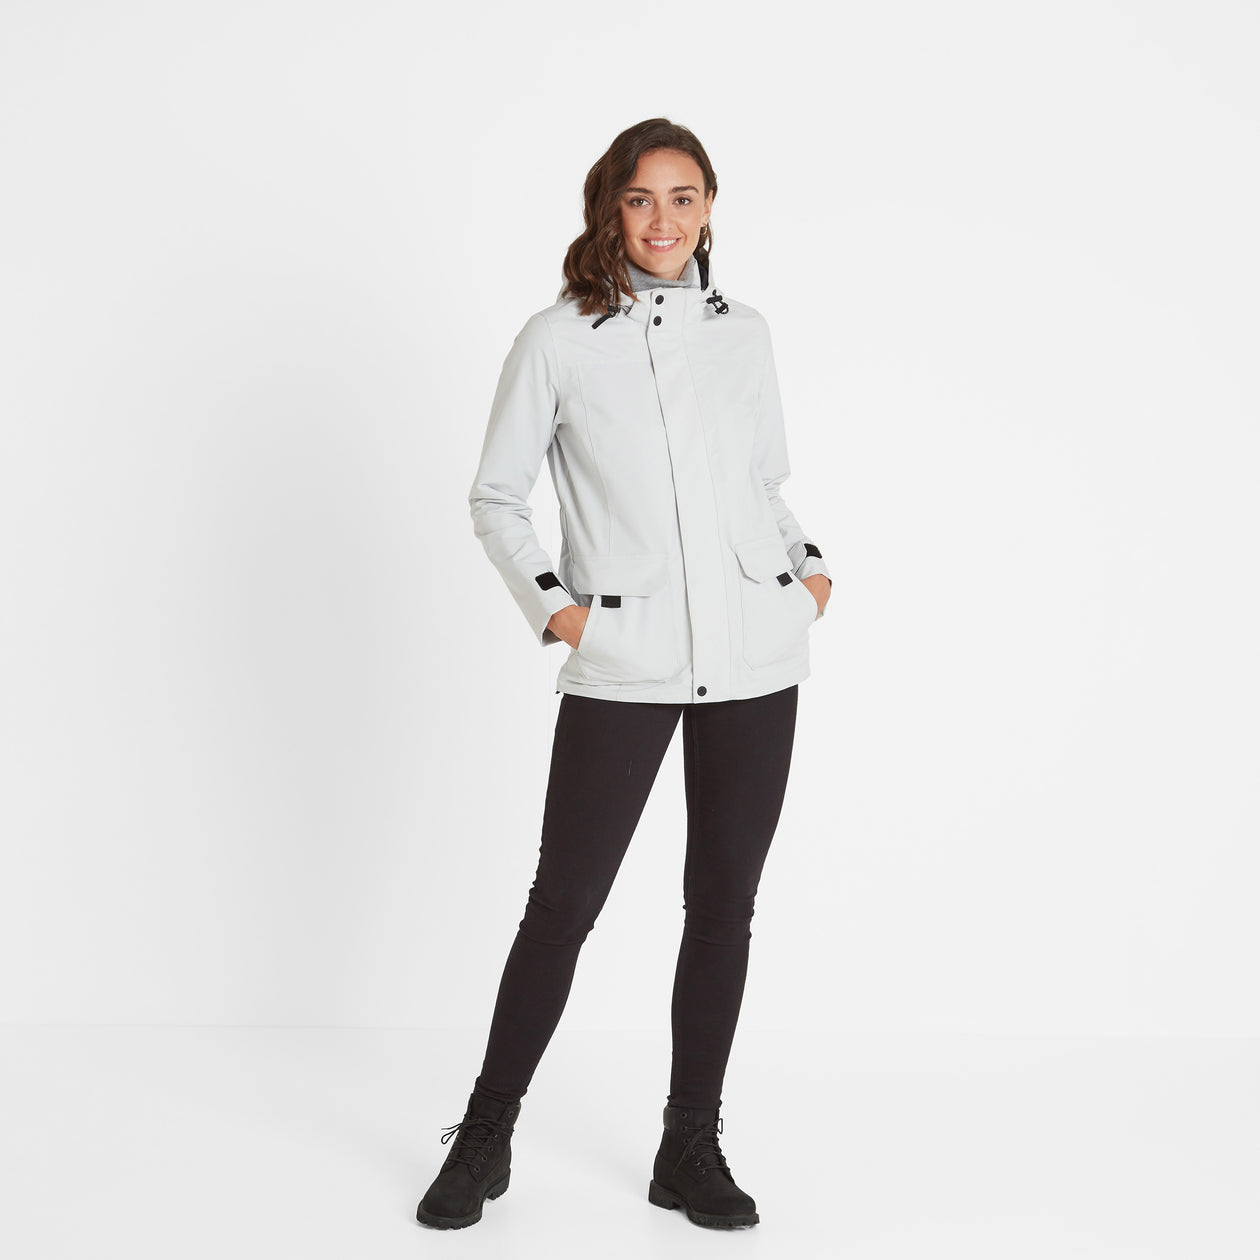 Beamsley Womens Waterproof Jacket - Ice Grey image 4